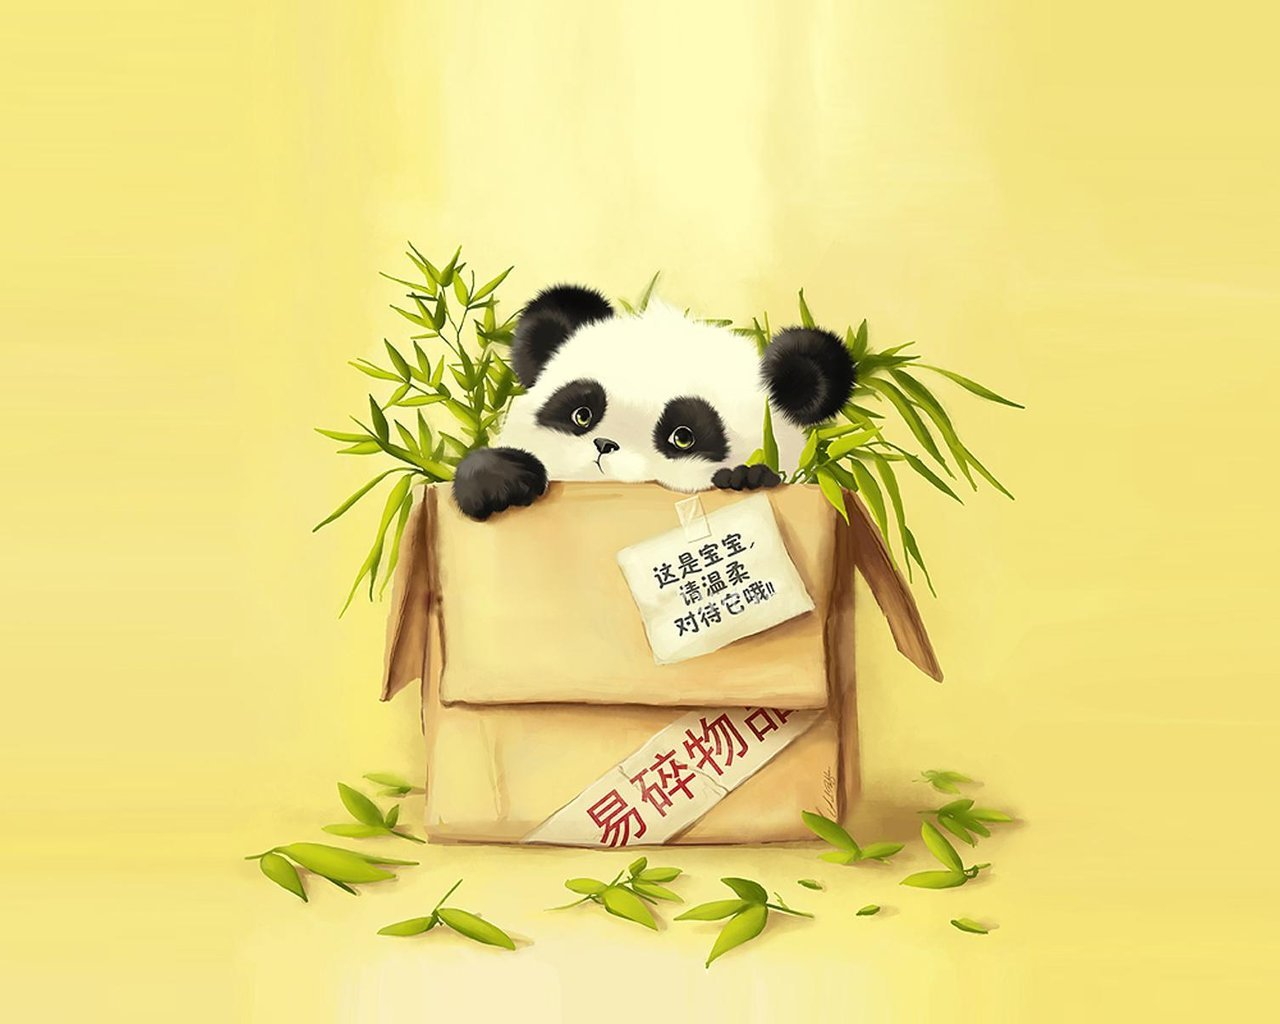 29333 download wallpaper Animals, Background, Pandas screensavers and pictures for free